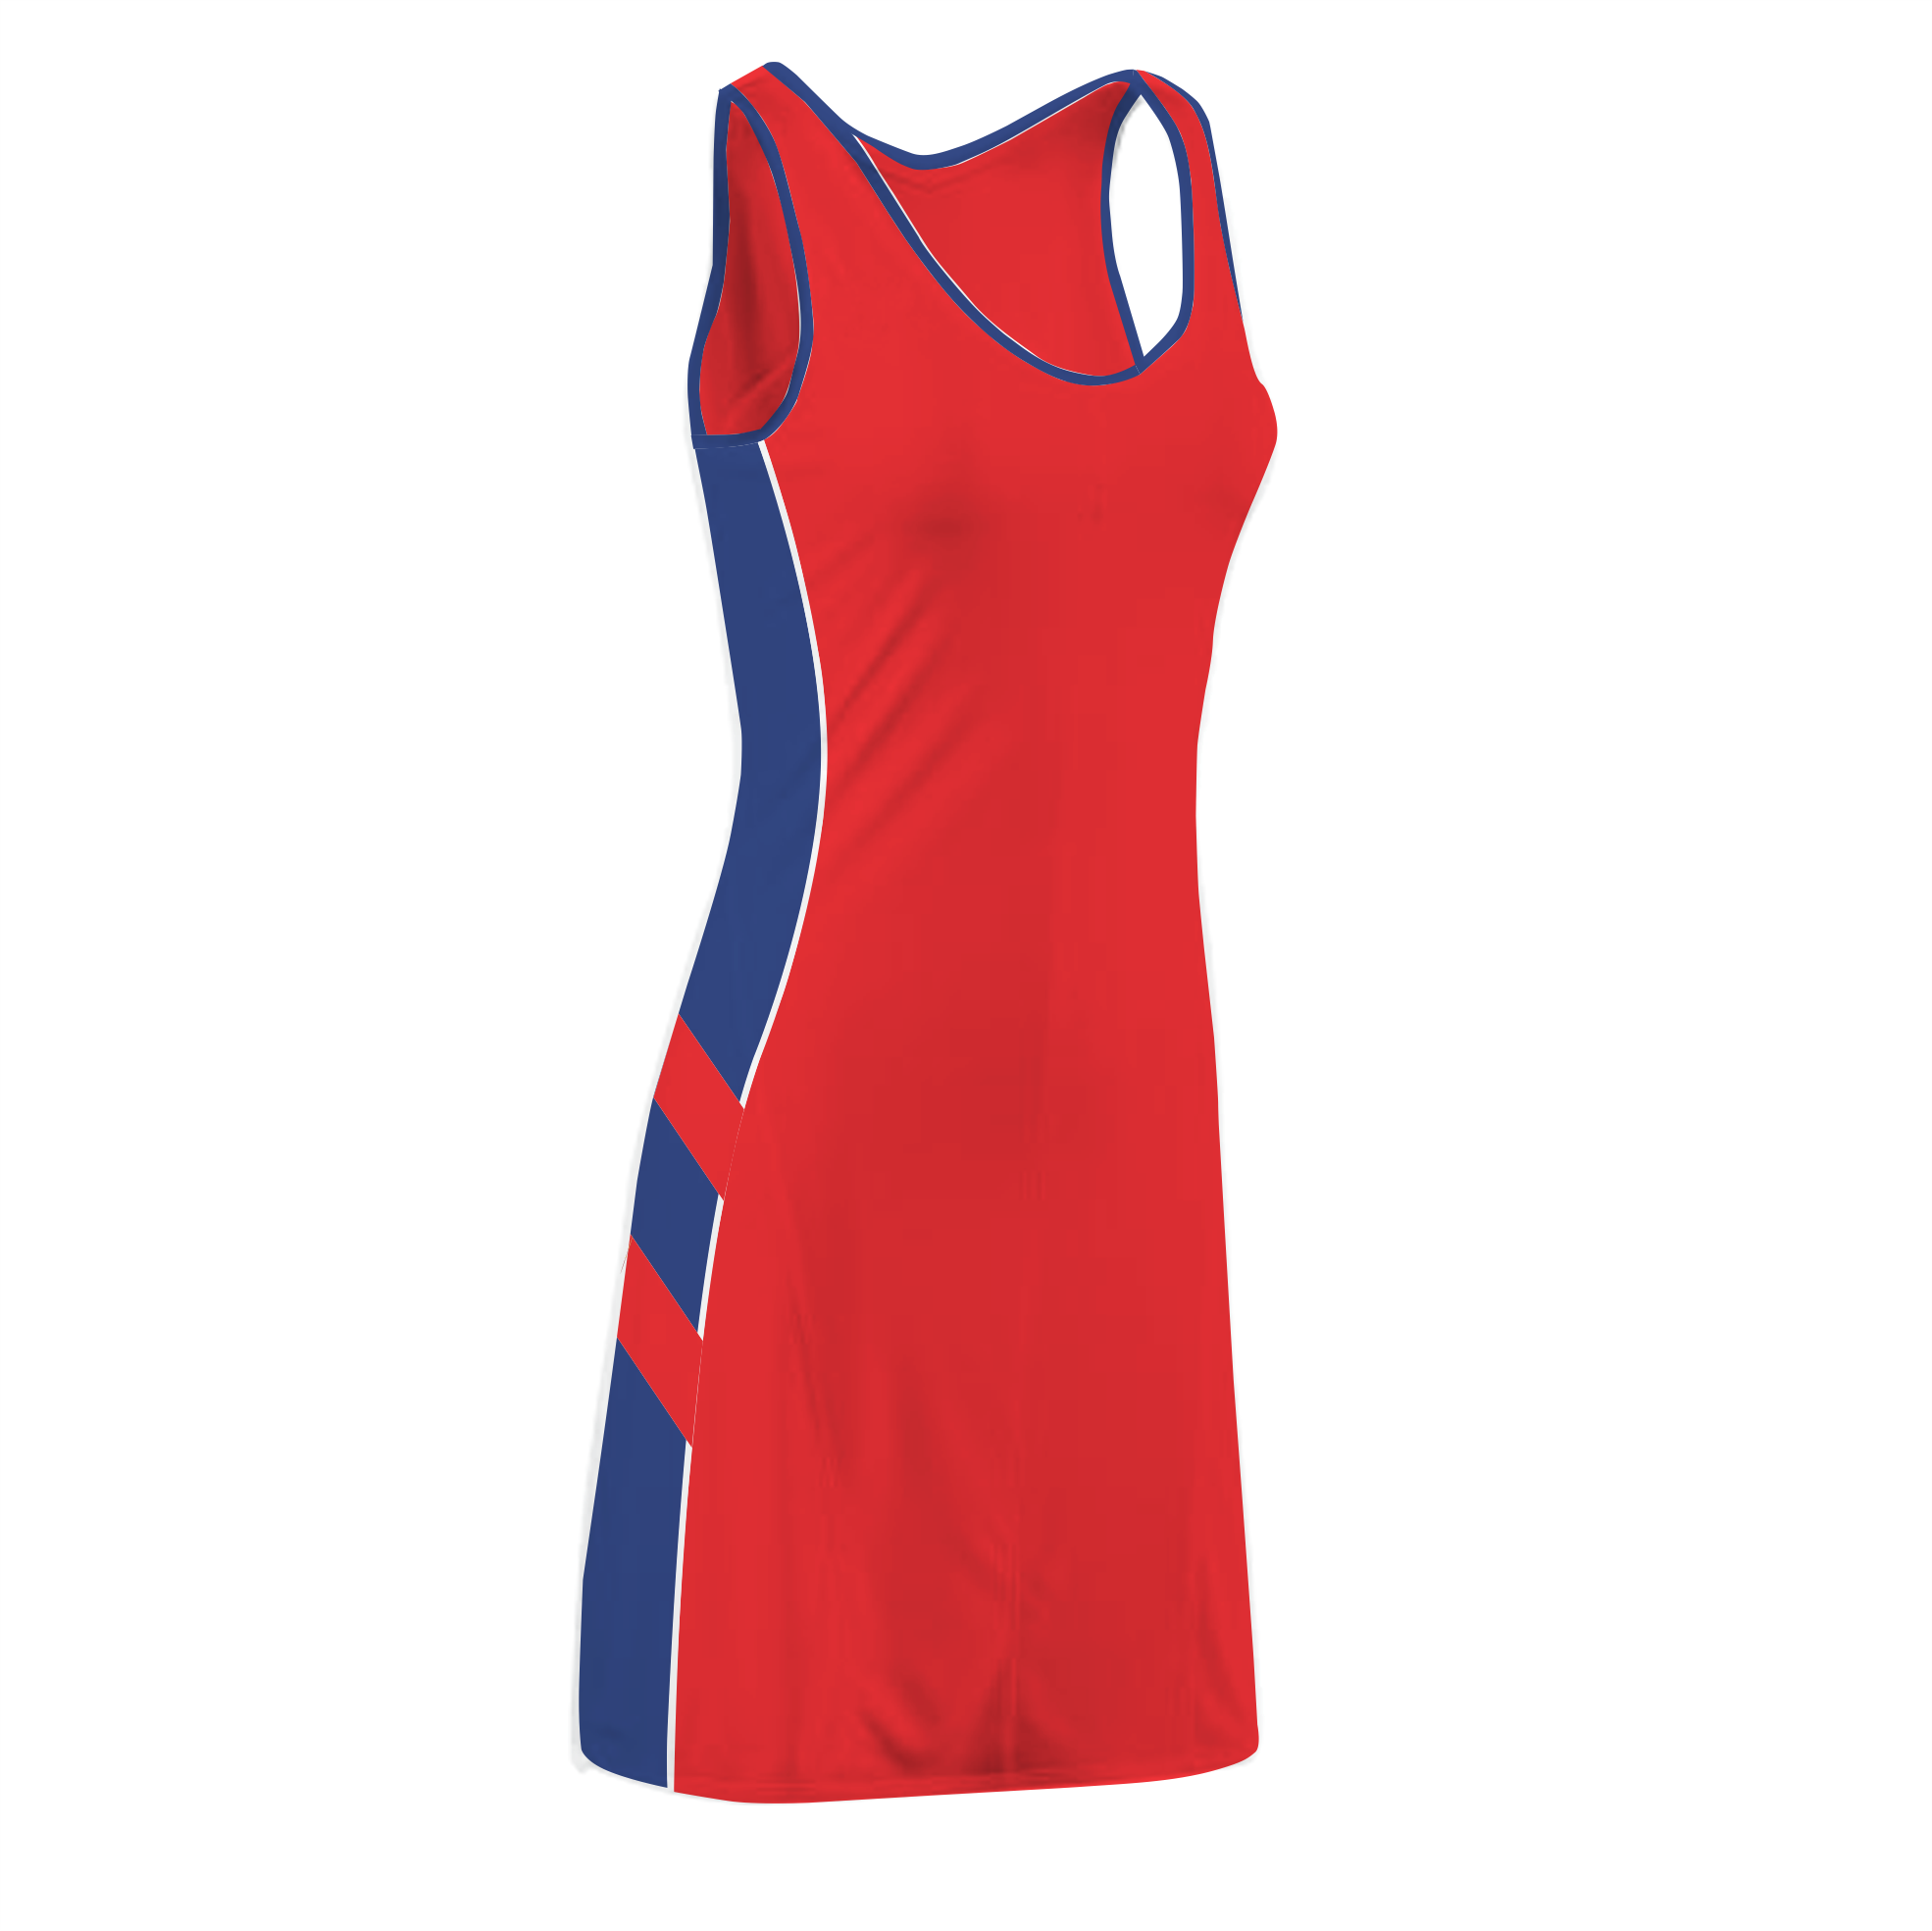 Panelled - hockey Dress - Izette